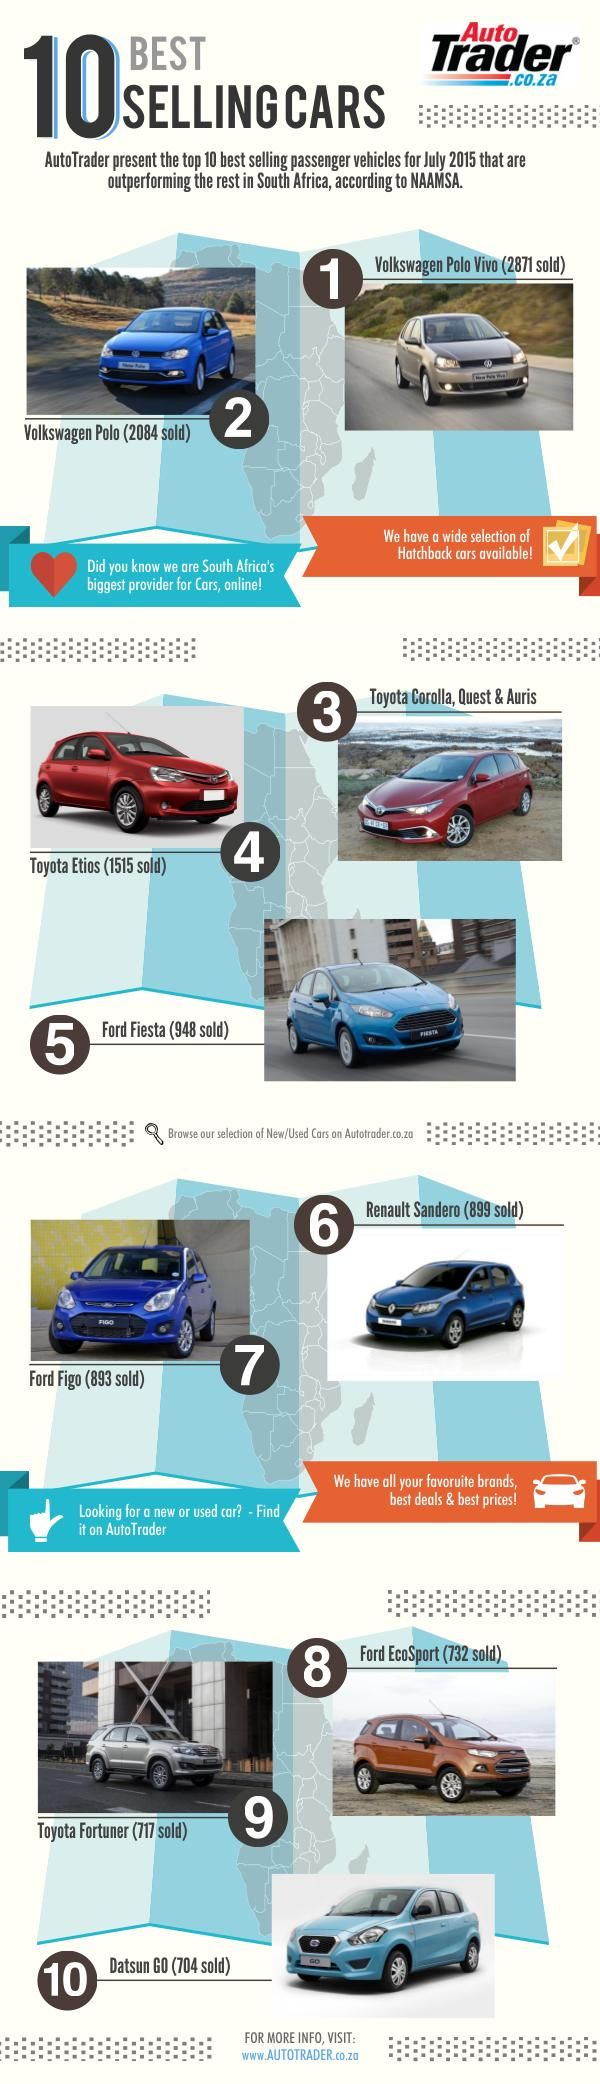 Auto trader south africa s top 10 selling cars for july 2015 www autotrader